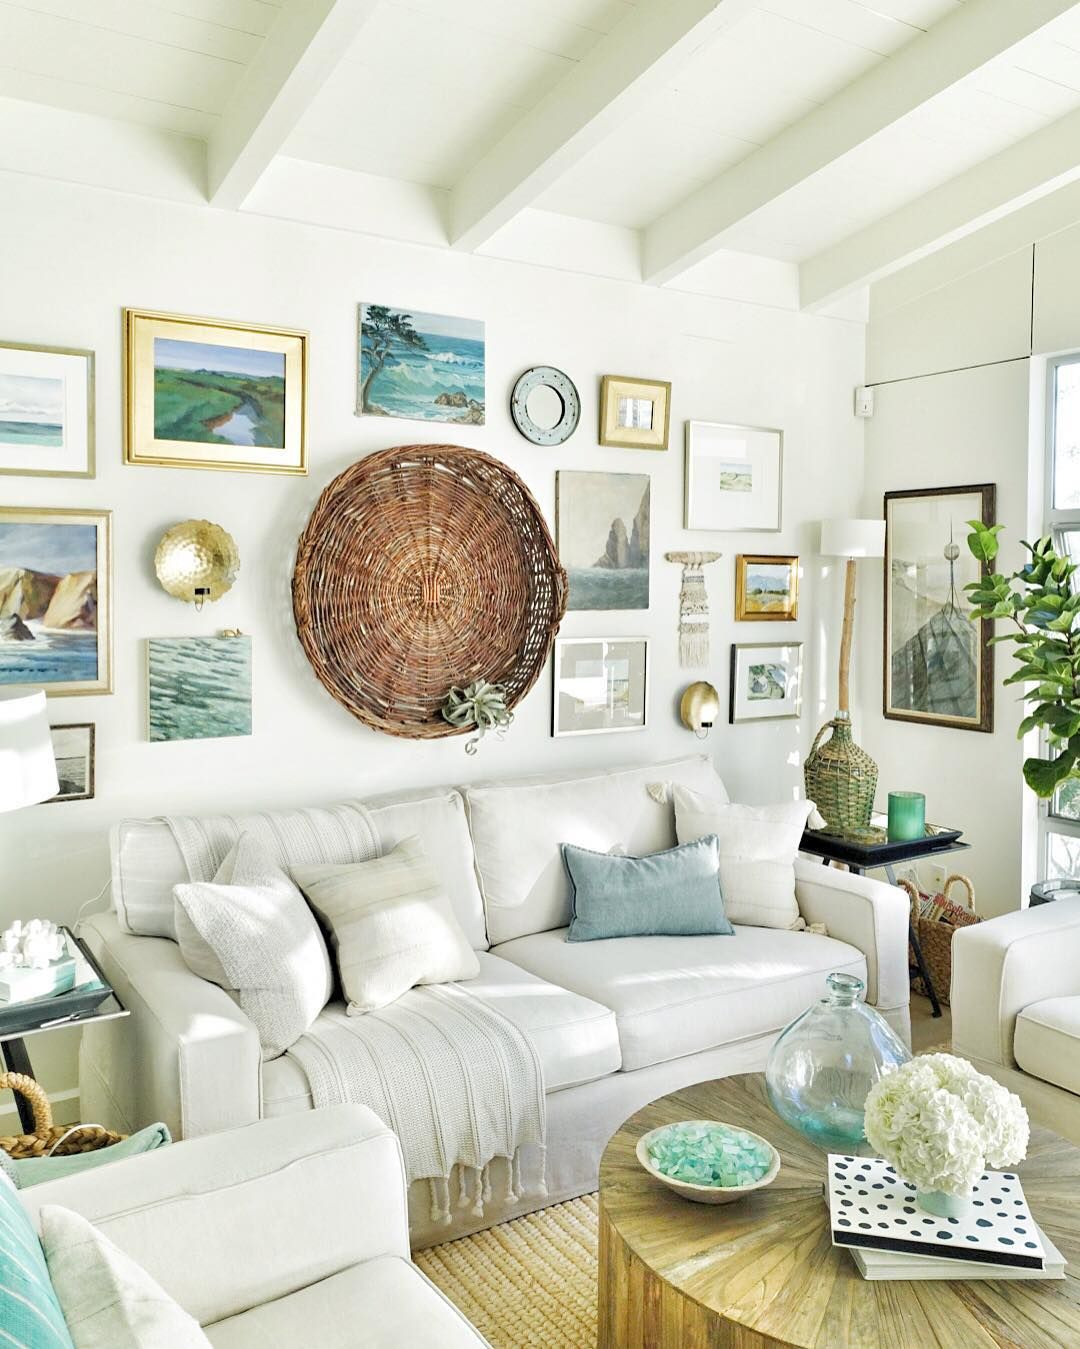 Cozy Coastal Living Room: A Cozy Beach Cottage Living Room With A Seaside-inspired